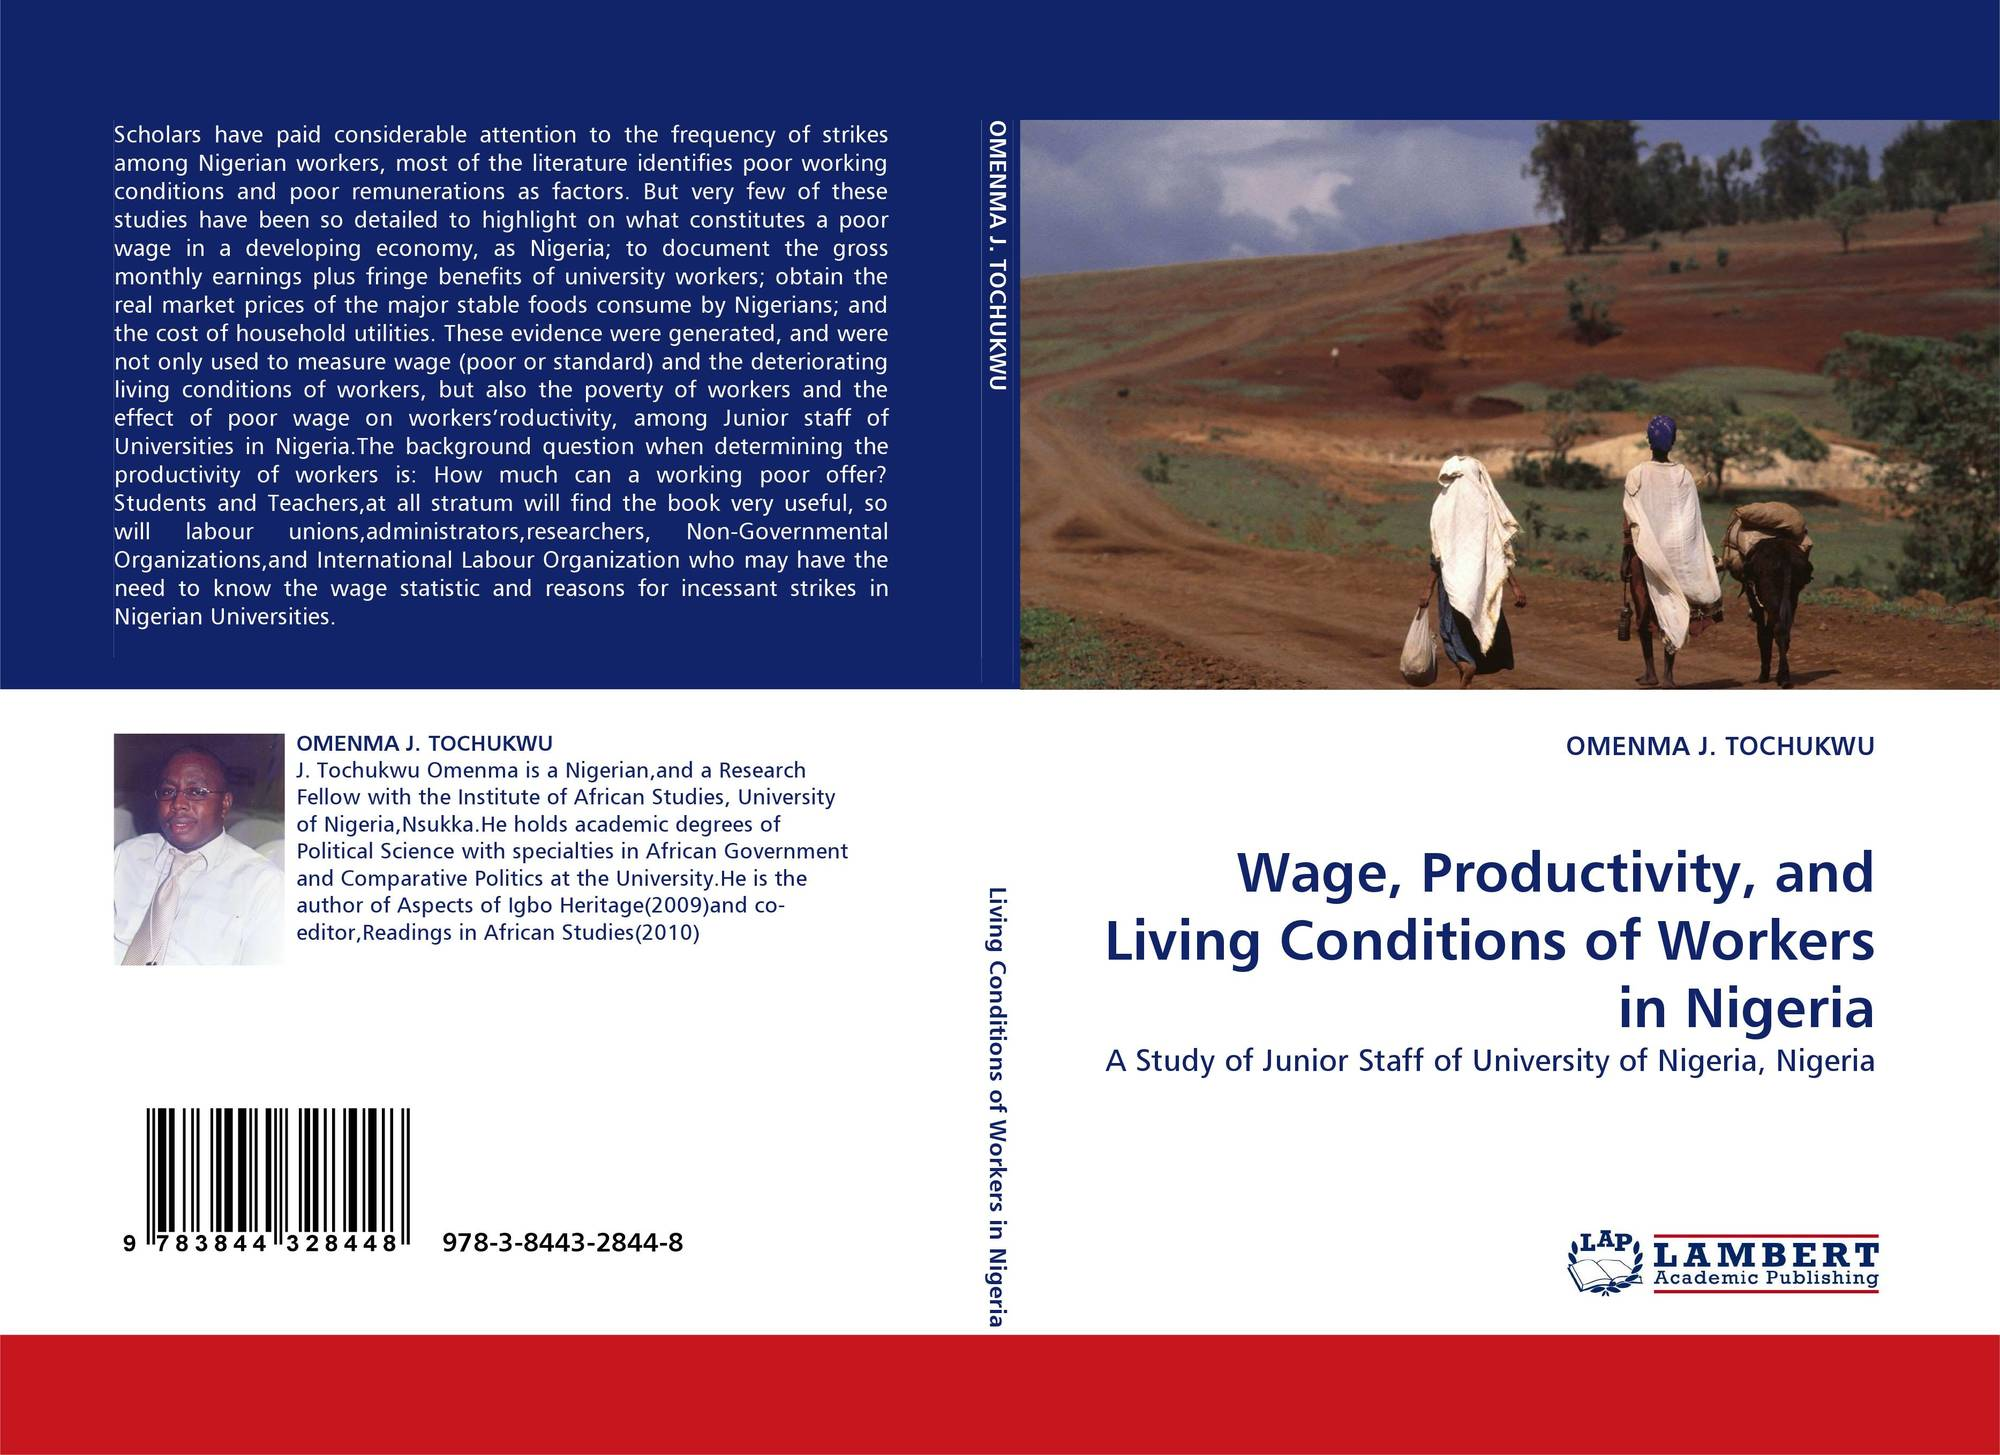 an overview of the south africa as the prime example of the unsettling conditions for living By the end of the 1980s, almost one-half of black south africans--according to apartheid theory, a rural people--would be living in cities and towns, accounting for nearly 60 percent of south africa's urban dwellers.